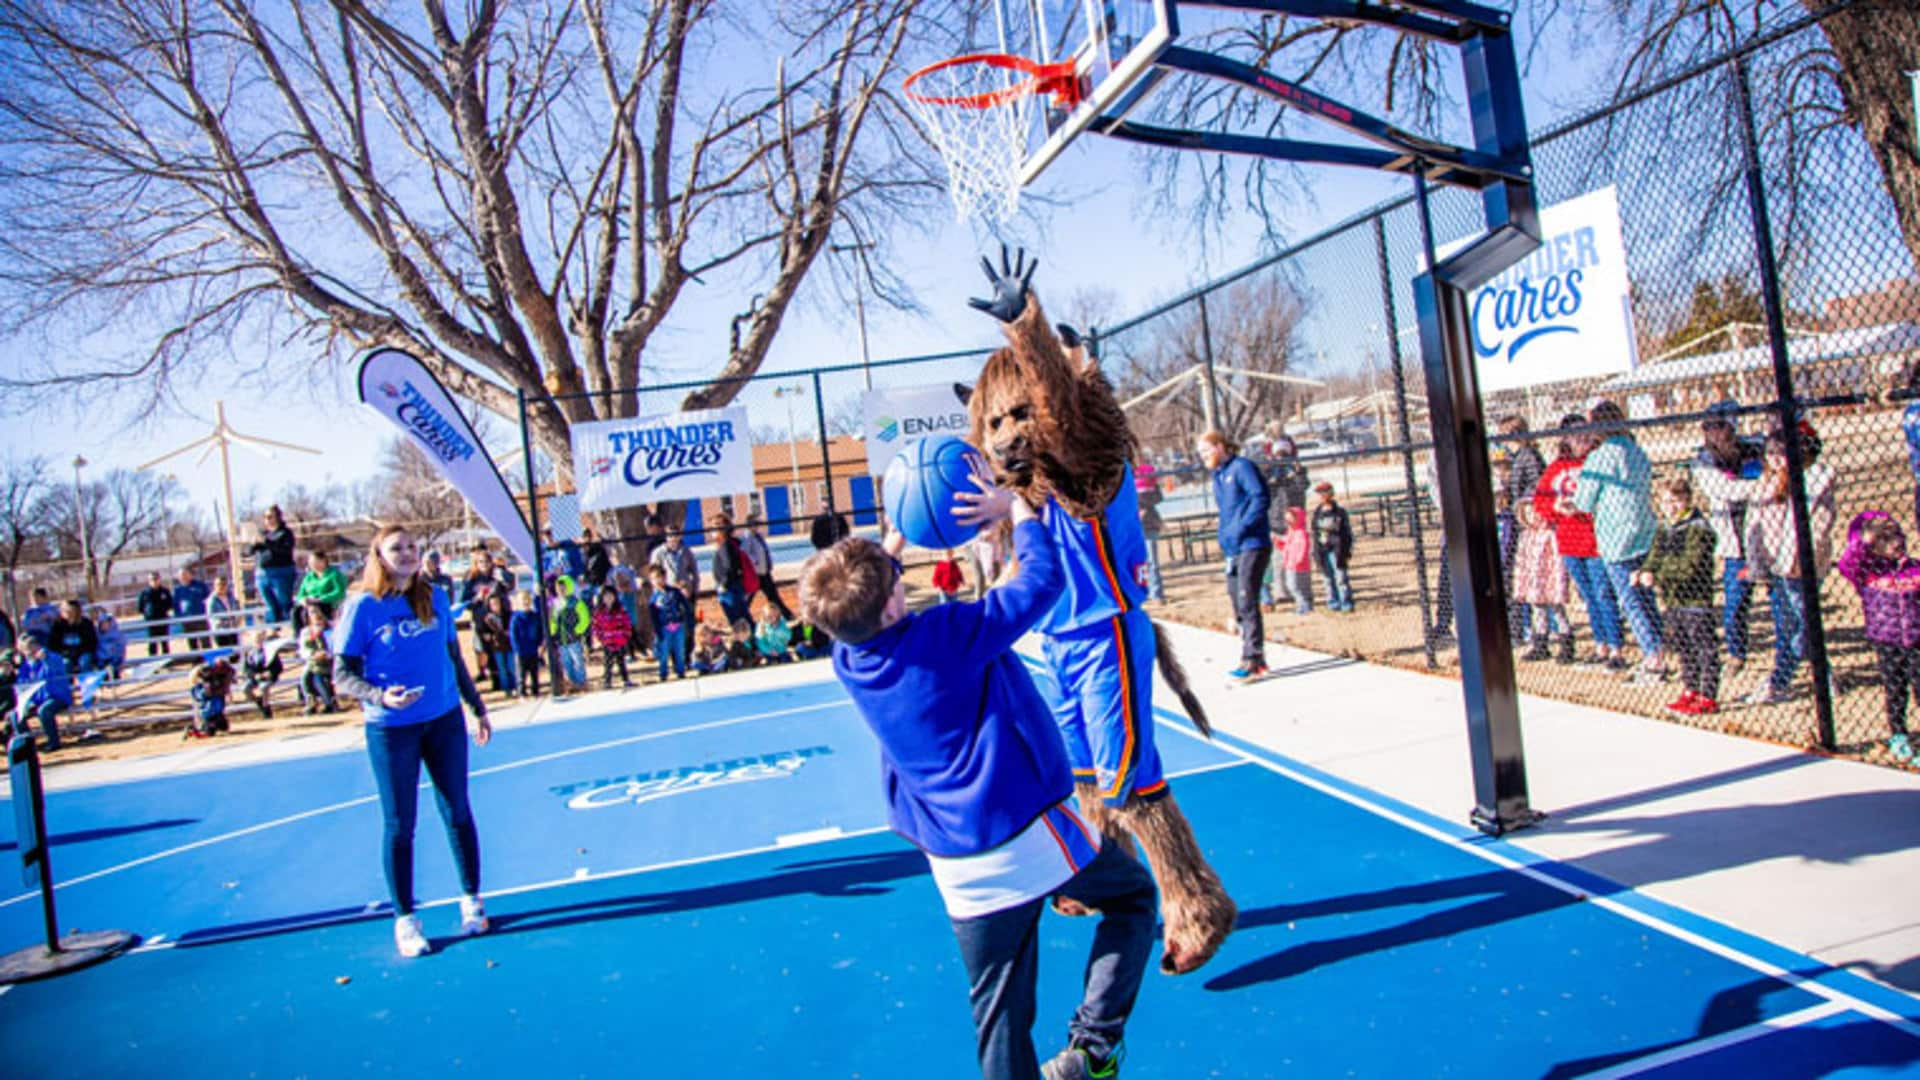 Thunder Court Dedication in Weatherford